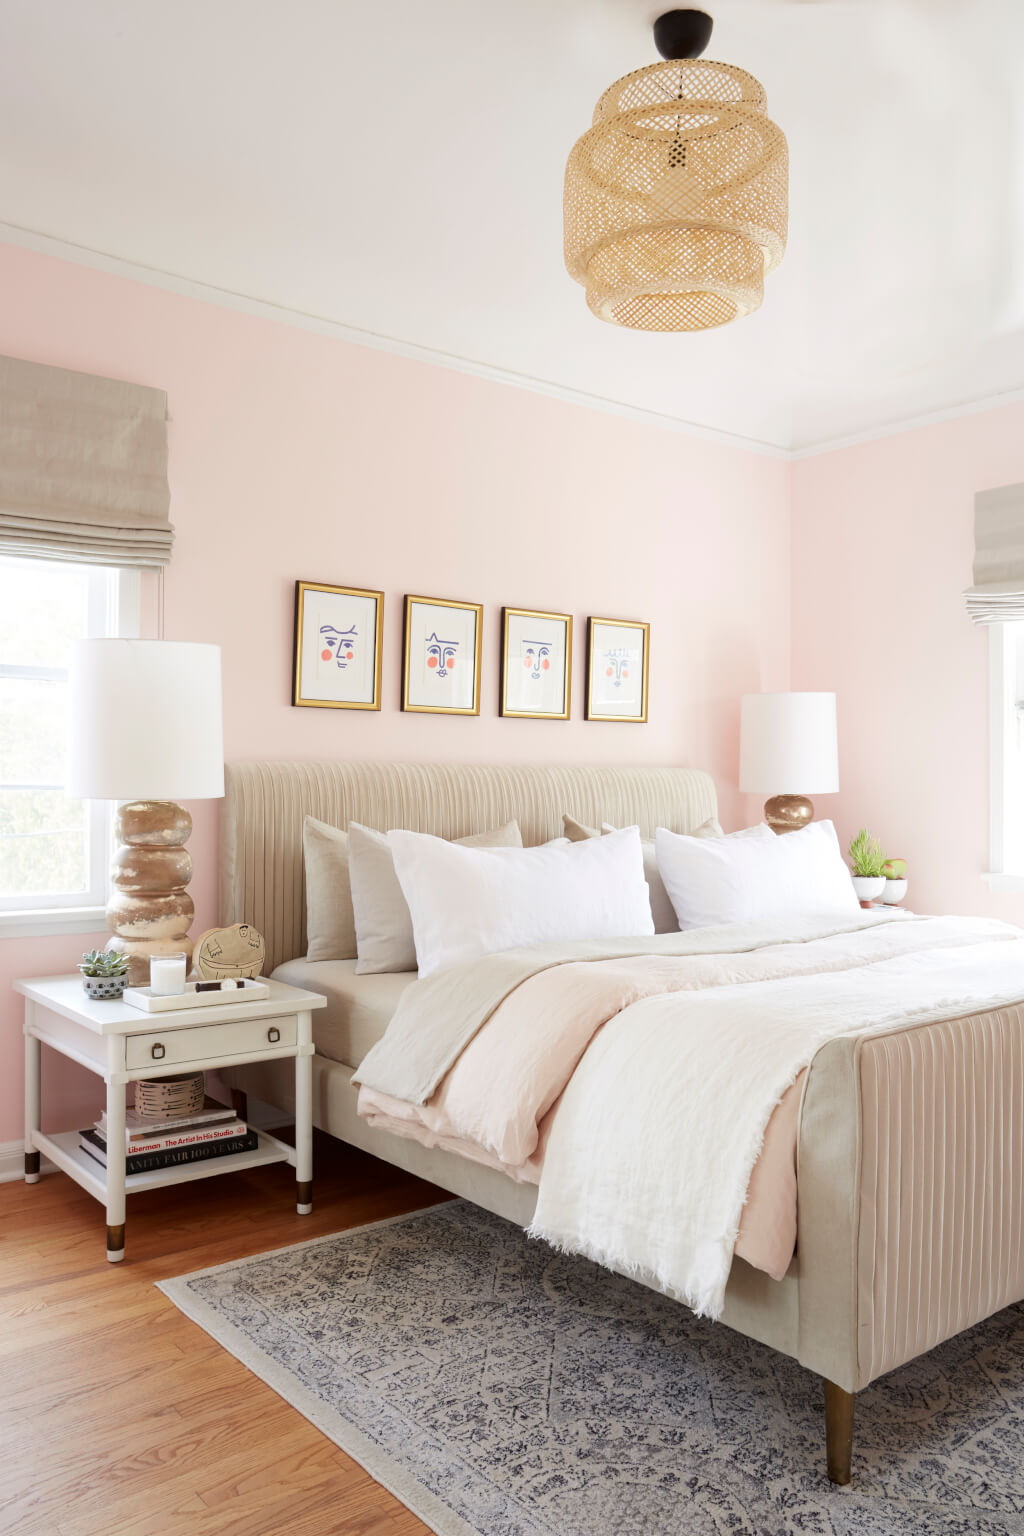 Blush Pink Bedroom - Gemini - How to Decorate according to your star sign